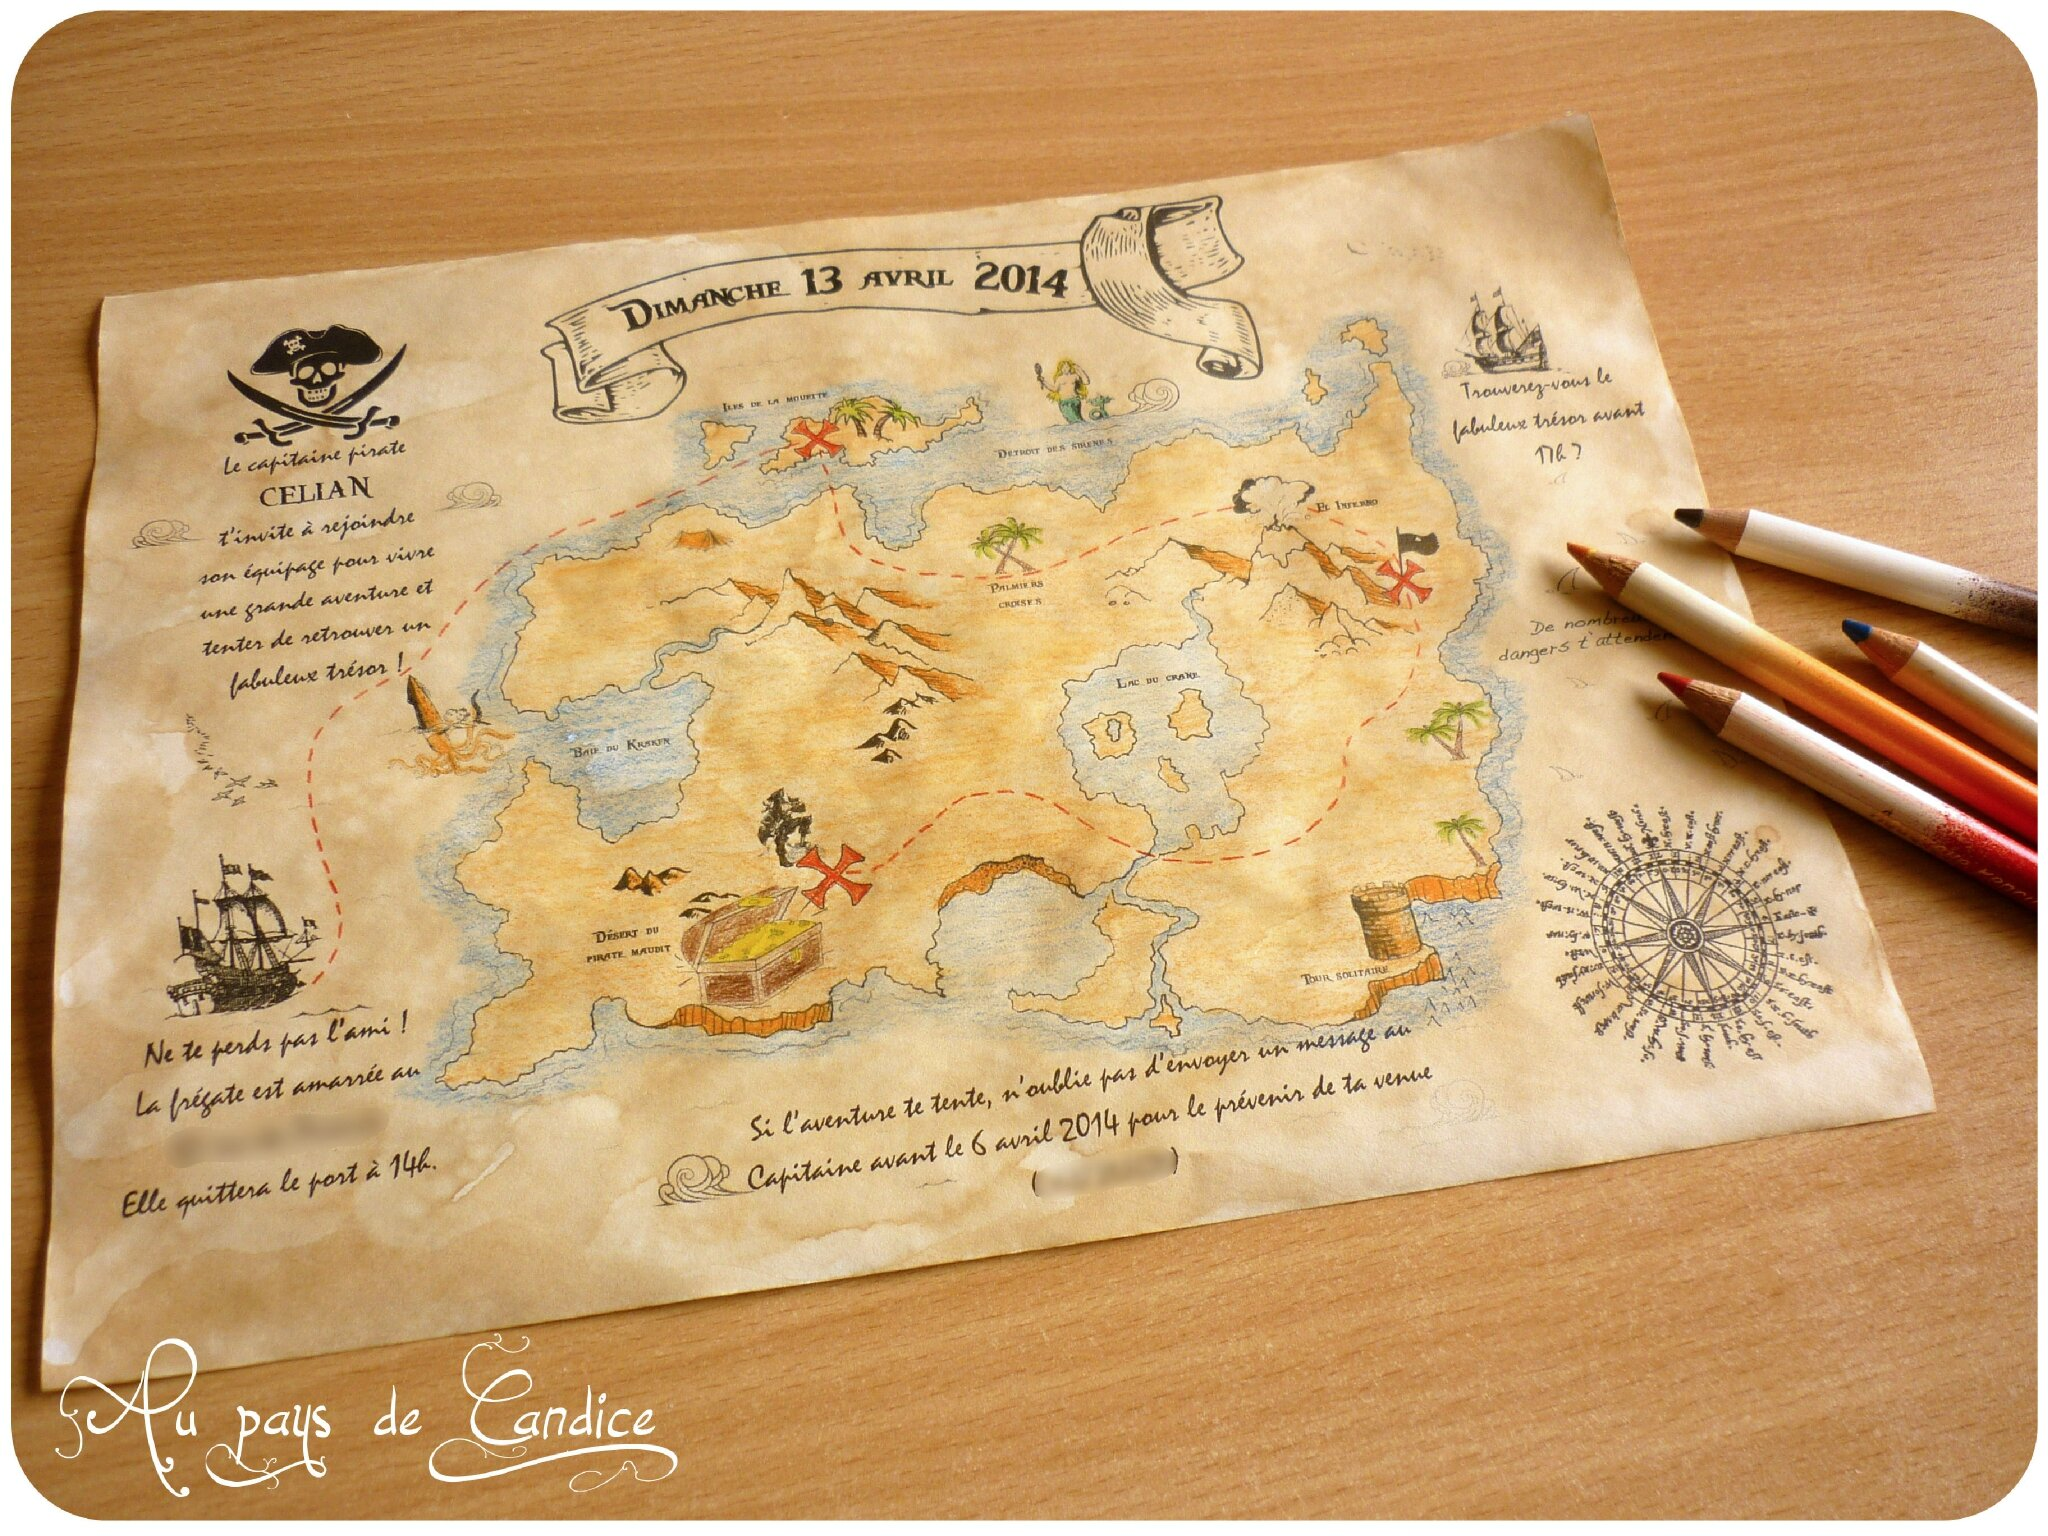 fabriquer une invitation pour une f te pirate au pays de candice. Black Bedroom Furniture Sets. Home Design Ideas